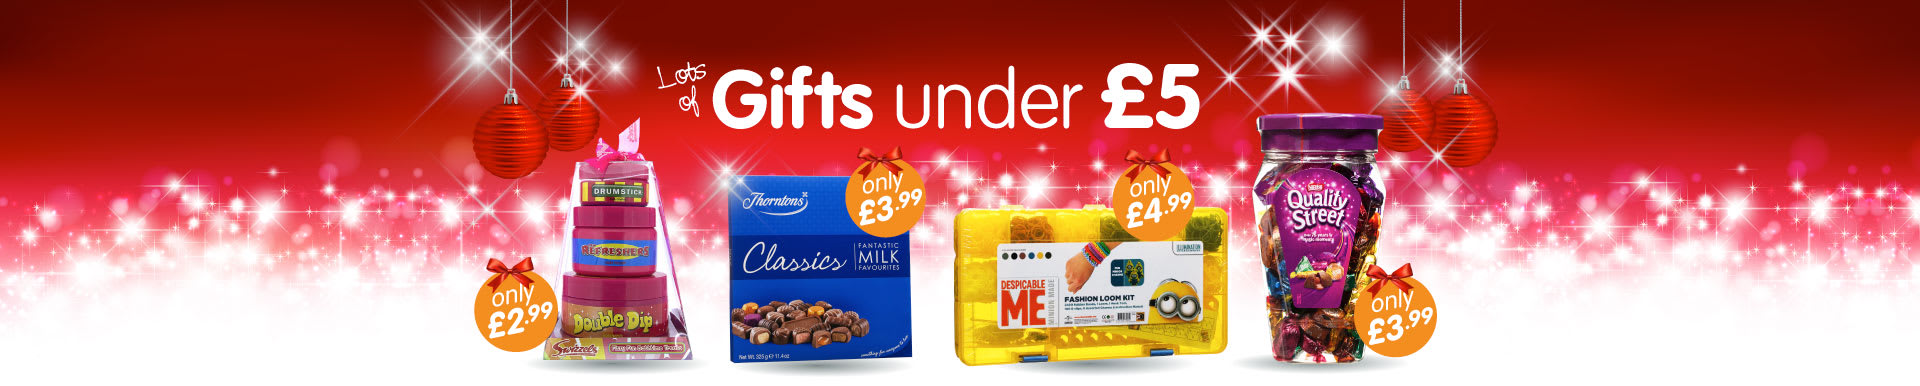 Great selection of Christmas gifts for under £5 at B&M Stores.